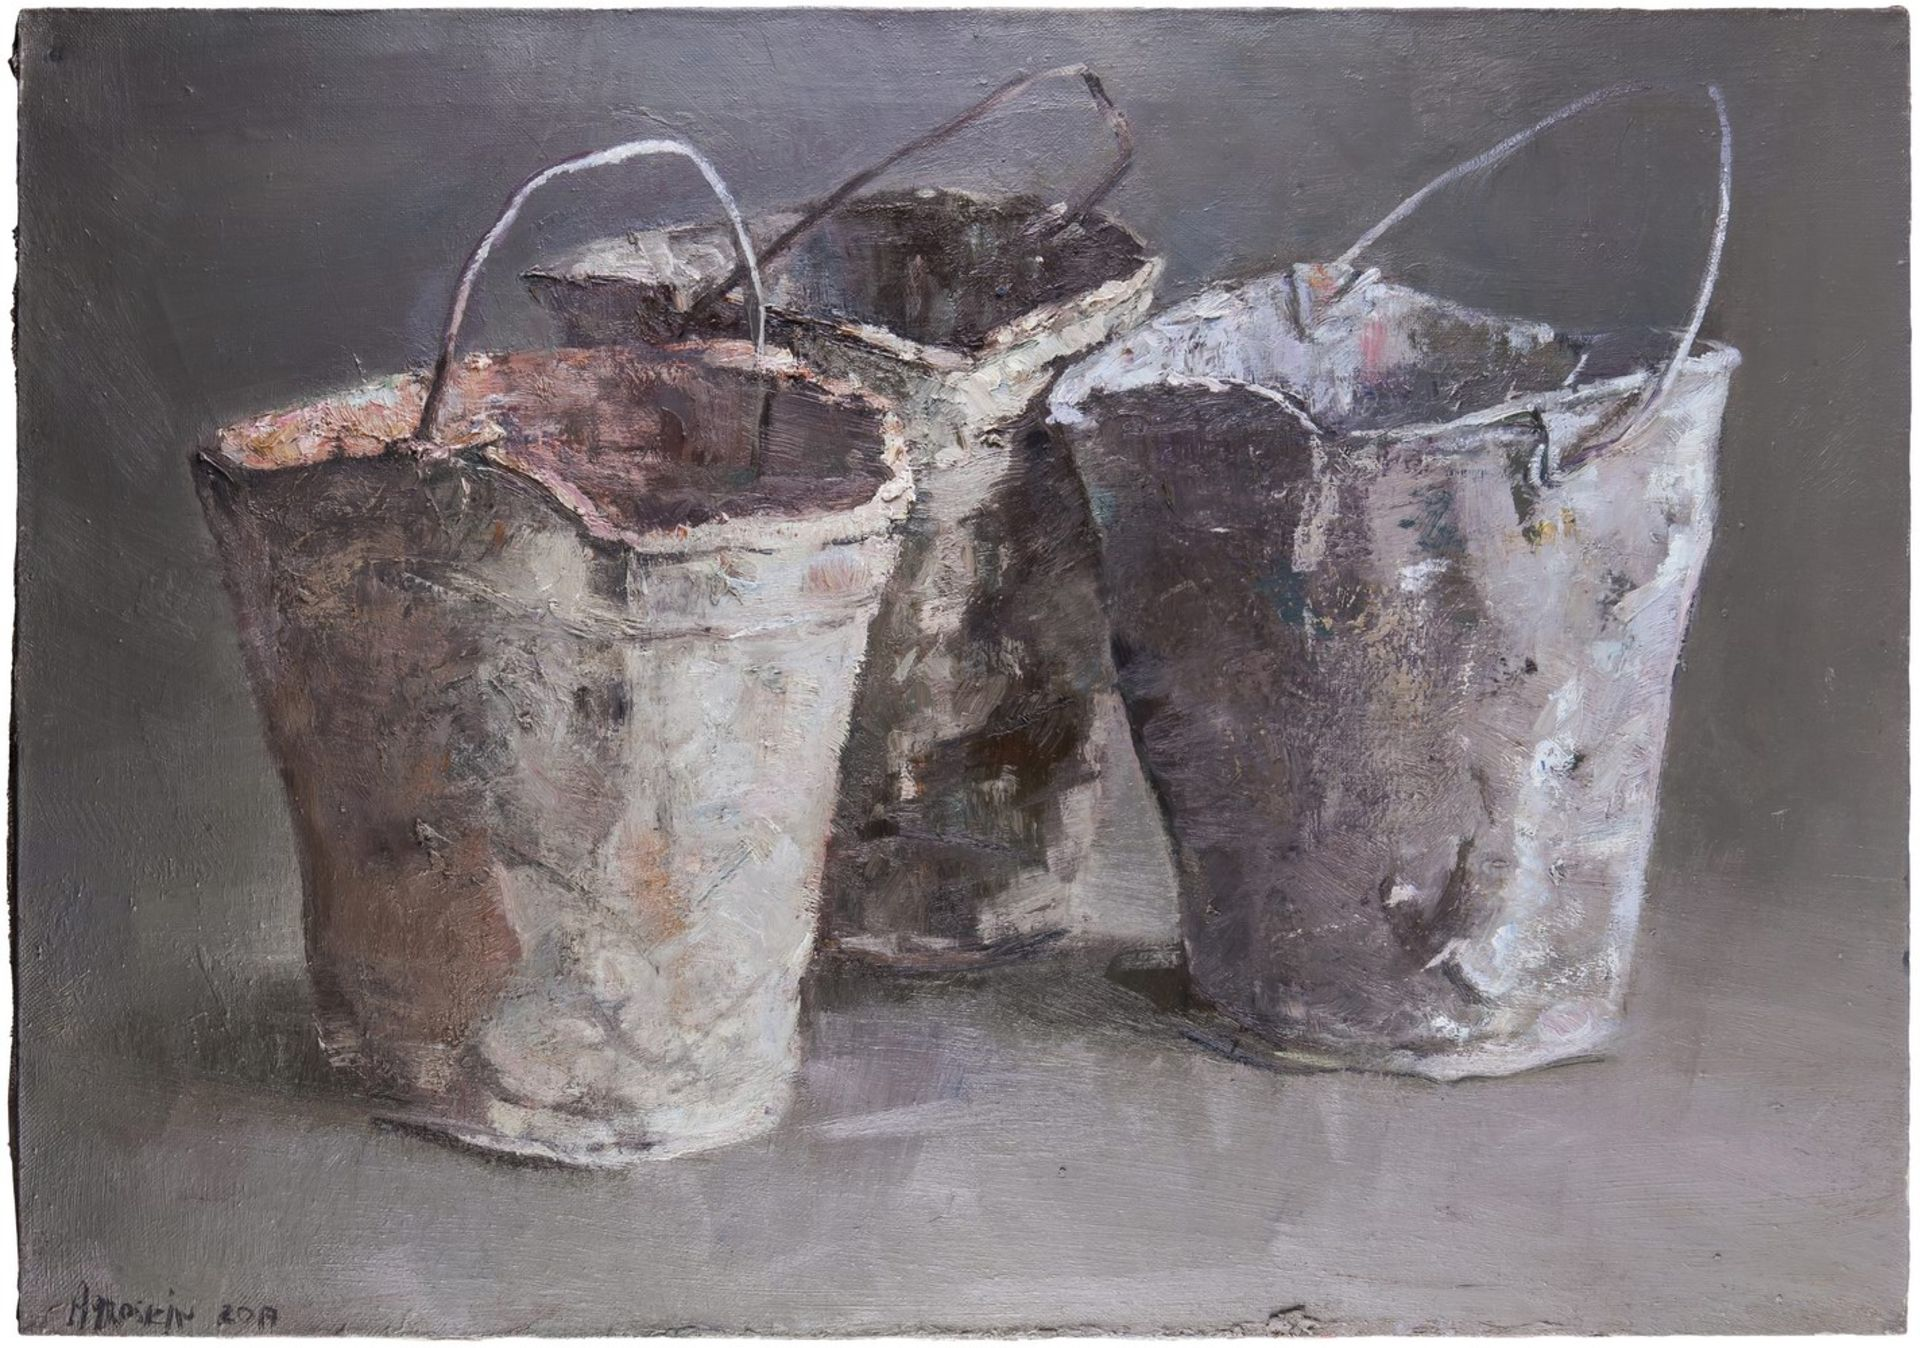 Agroskin, S.E. Buckets. 2017. Oil on canvas. 70x100 cm.<br>Signed. <br>Sales: Lyon &amp; Turnbull (A